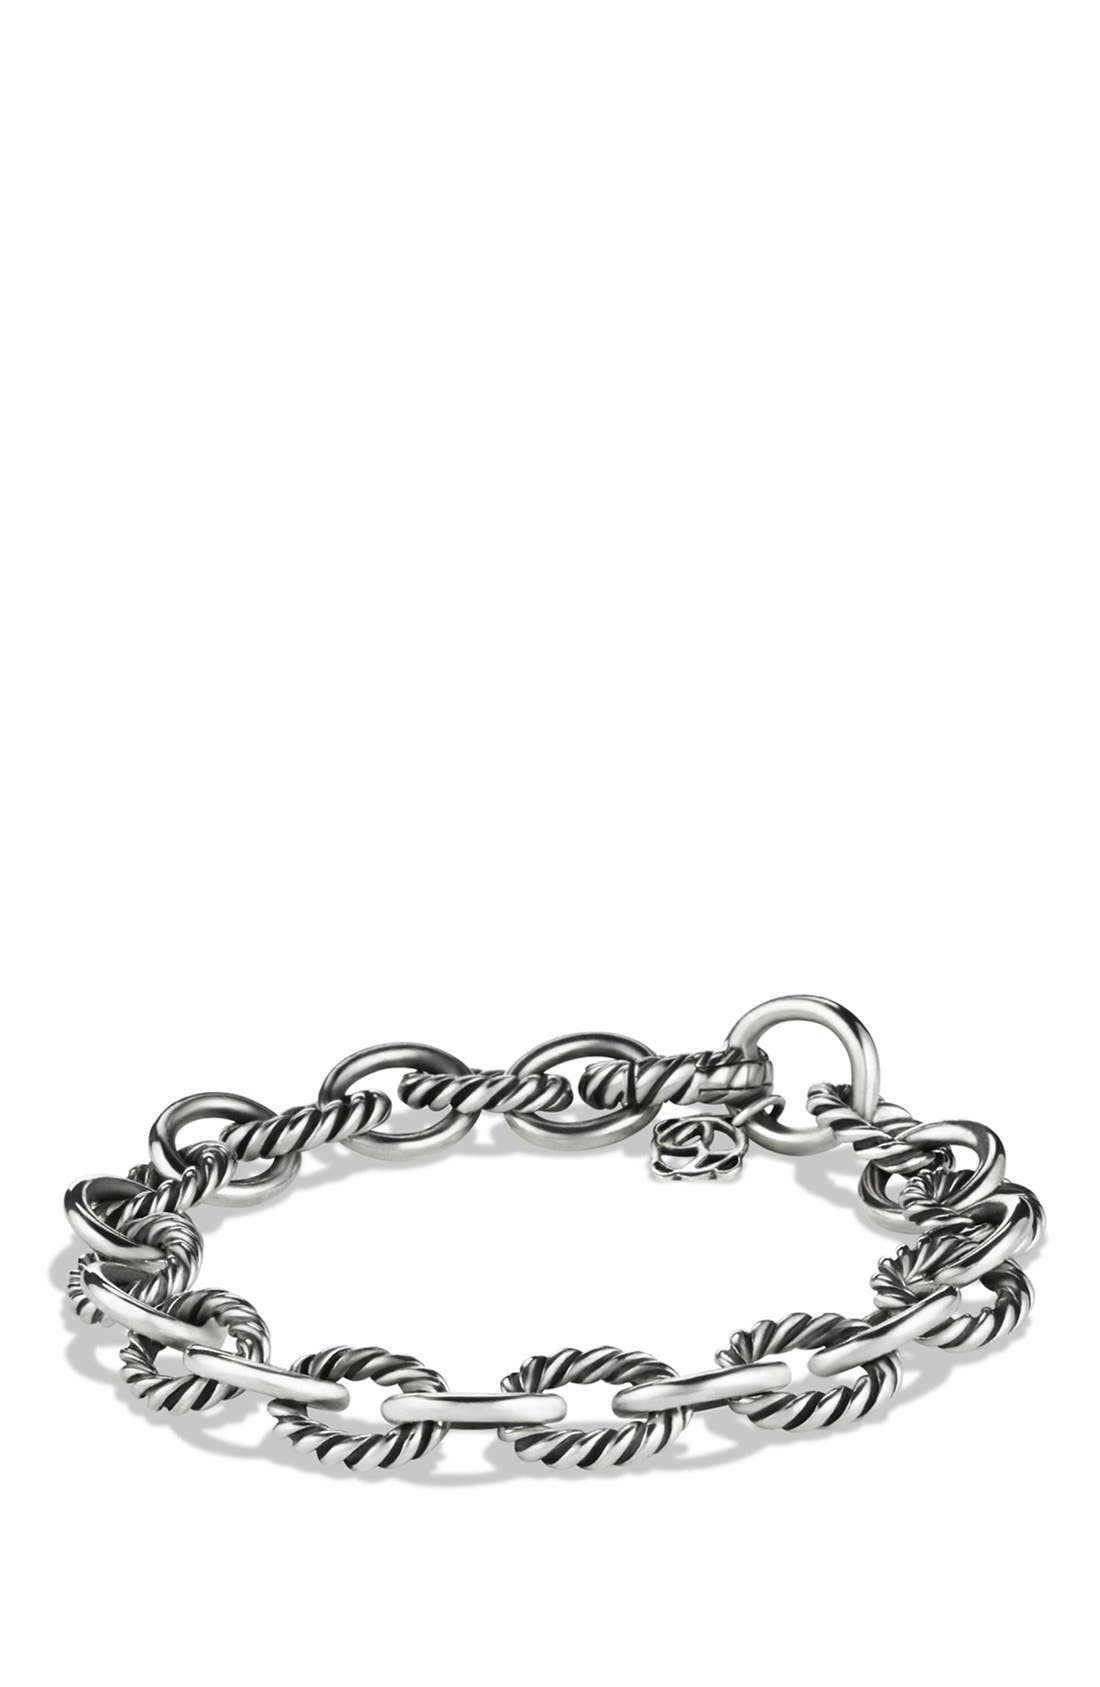 David Yurman 'Oval' Link Bracelet